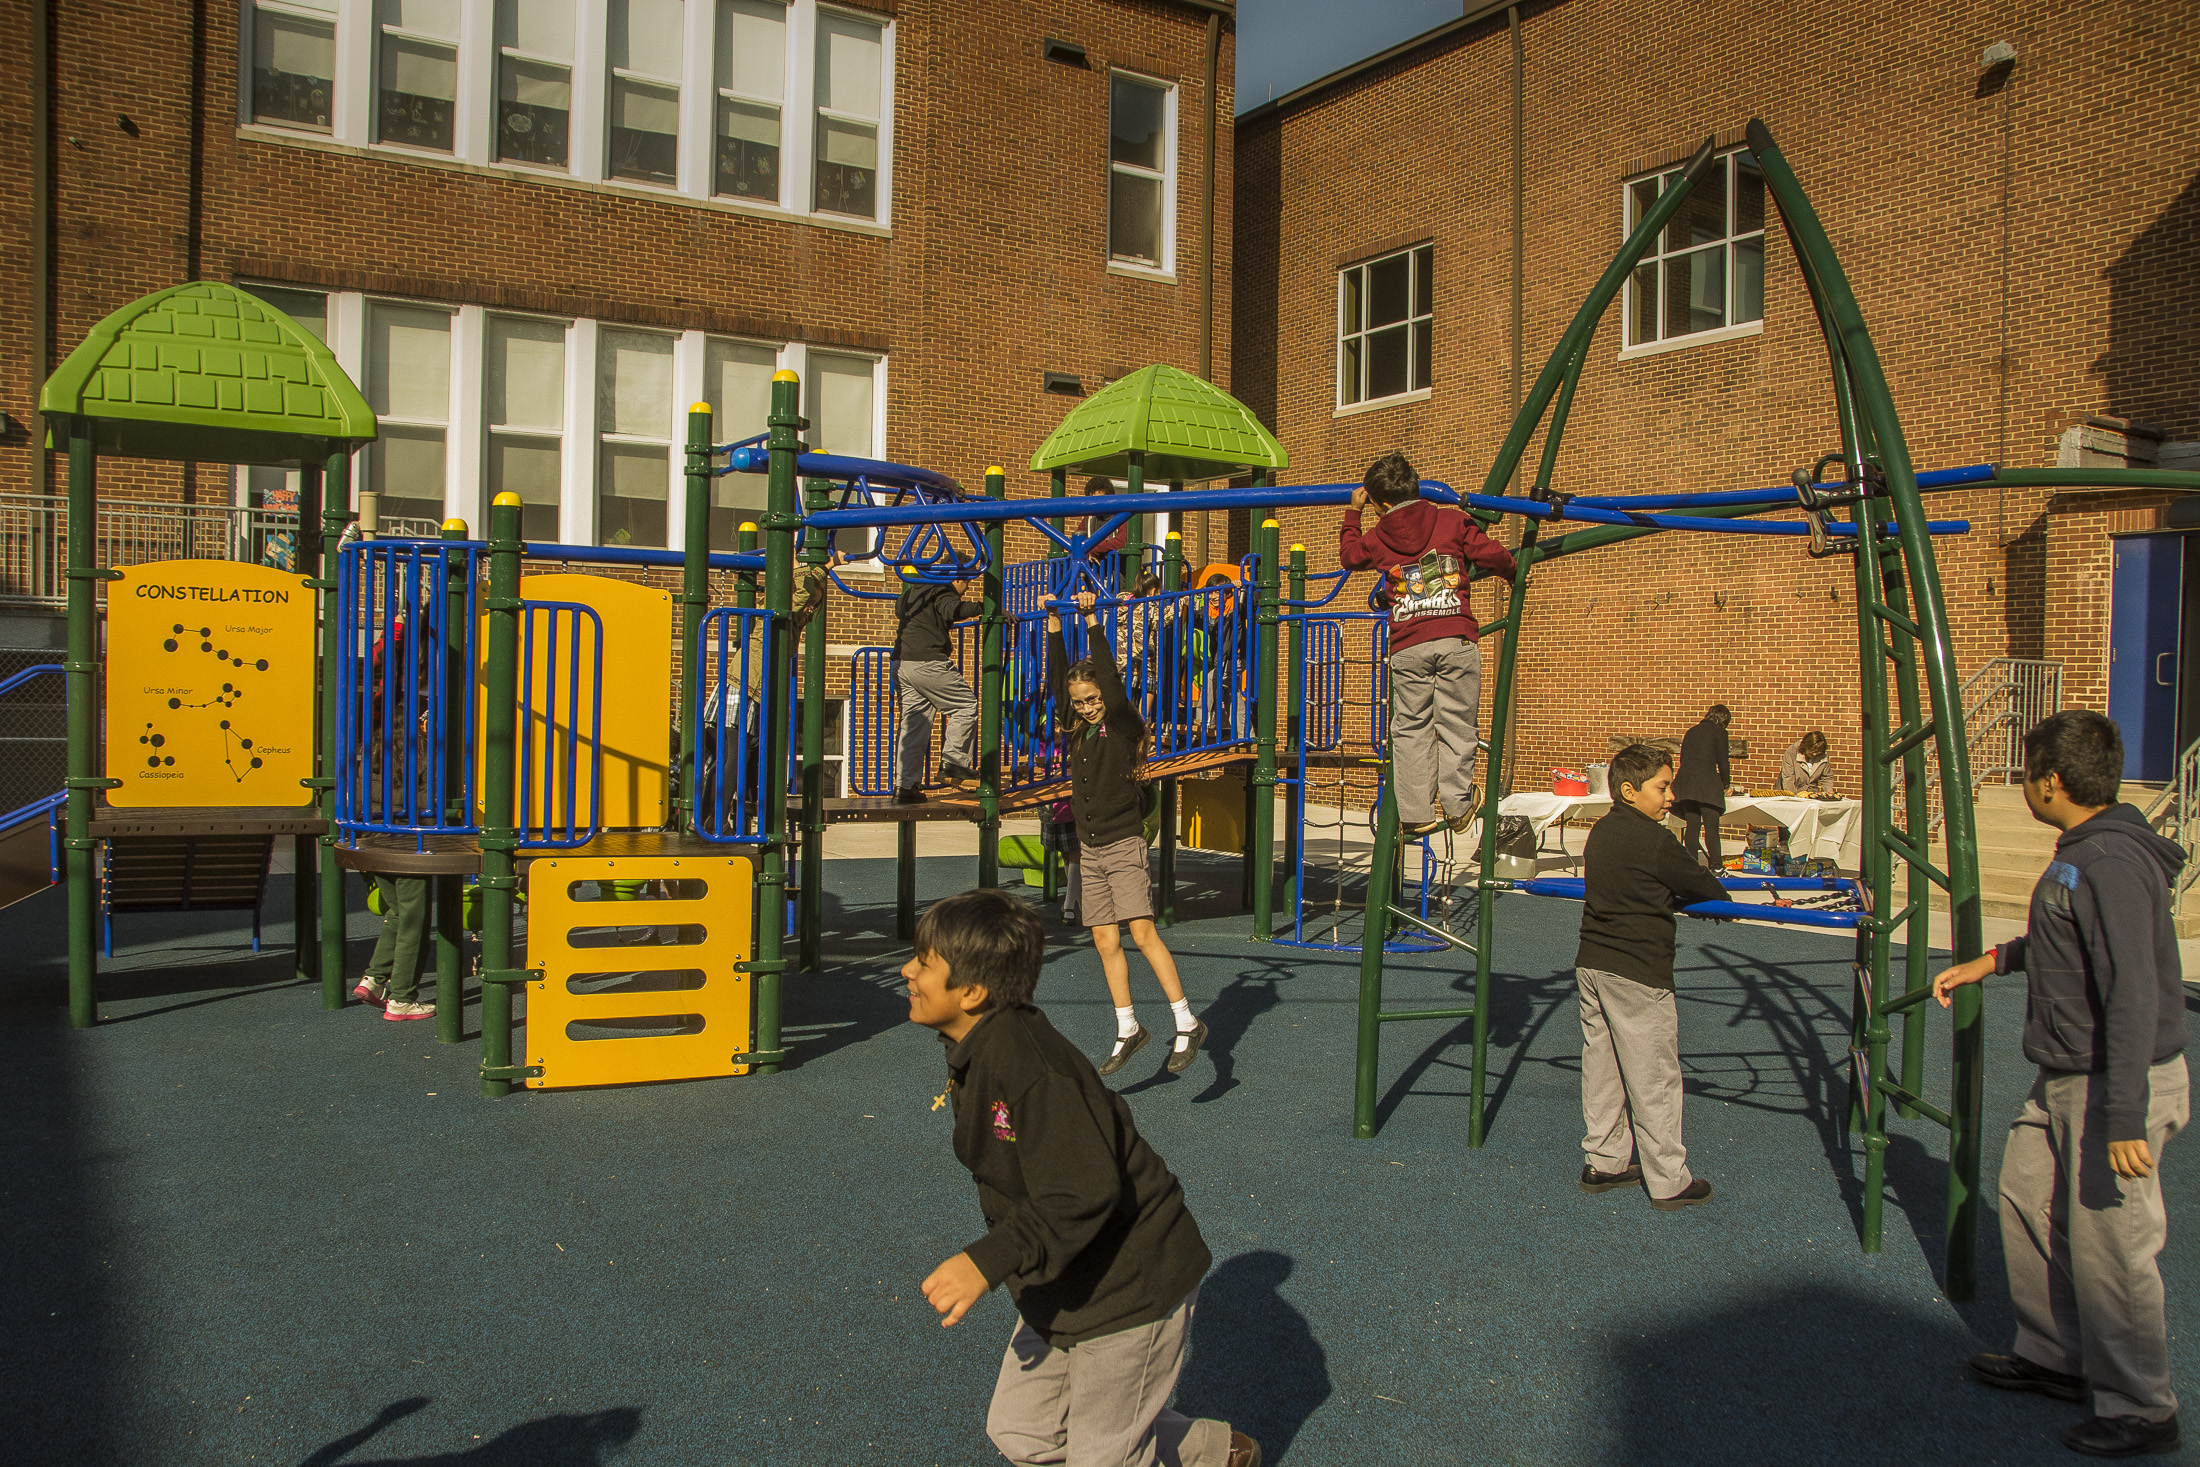 Archbishop borders - 3500 Foster AvenueBaltimore, MD 21224Visit school websiteArchbishop Borders School is a Catholic school community that provides a rigorous academic dual language program infused with Catholic values to prepare leaders for a multicultural society.Leadership: Ms. Valerie Sandoval, PrincipalWatch School VideoQuick Facts:Grades: Pre-K through 8thEnrollment: 248Capacity: 280Empty Seats: 32Average class size: 20Demographics: 59% Hispanic, 17% African American, 13% Caucasian, 11% OtherFree & Reduced Lunches: 53%